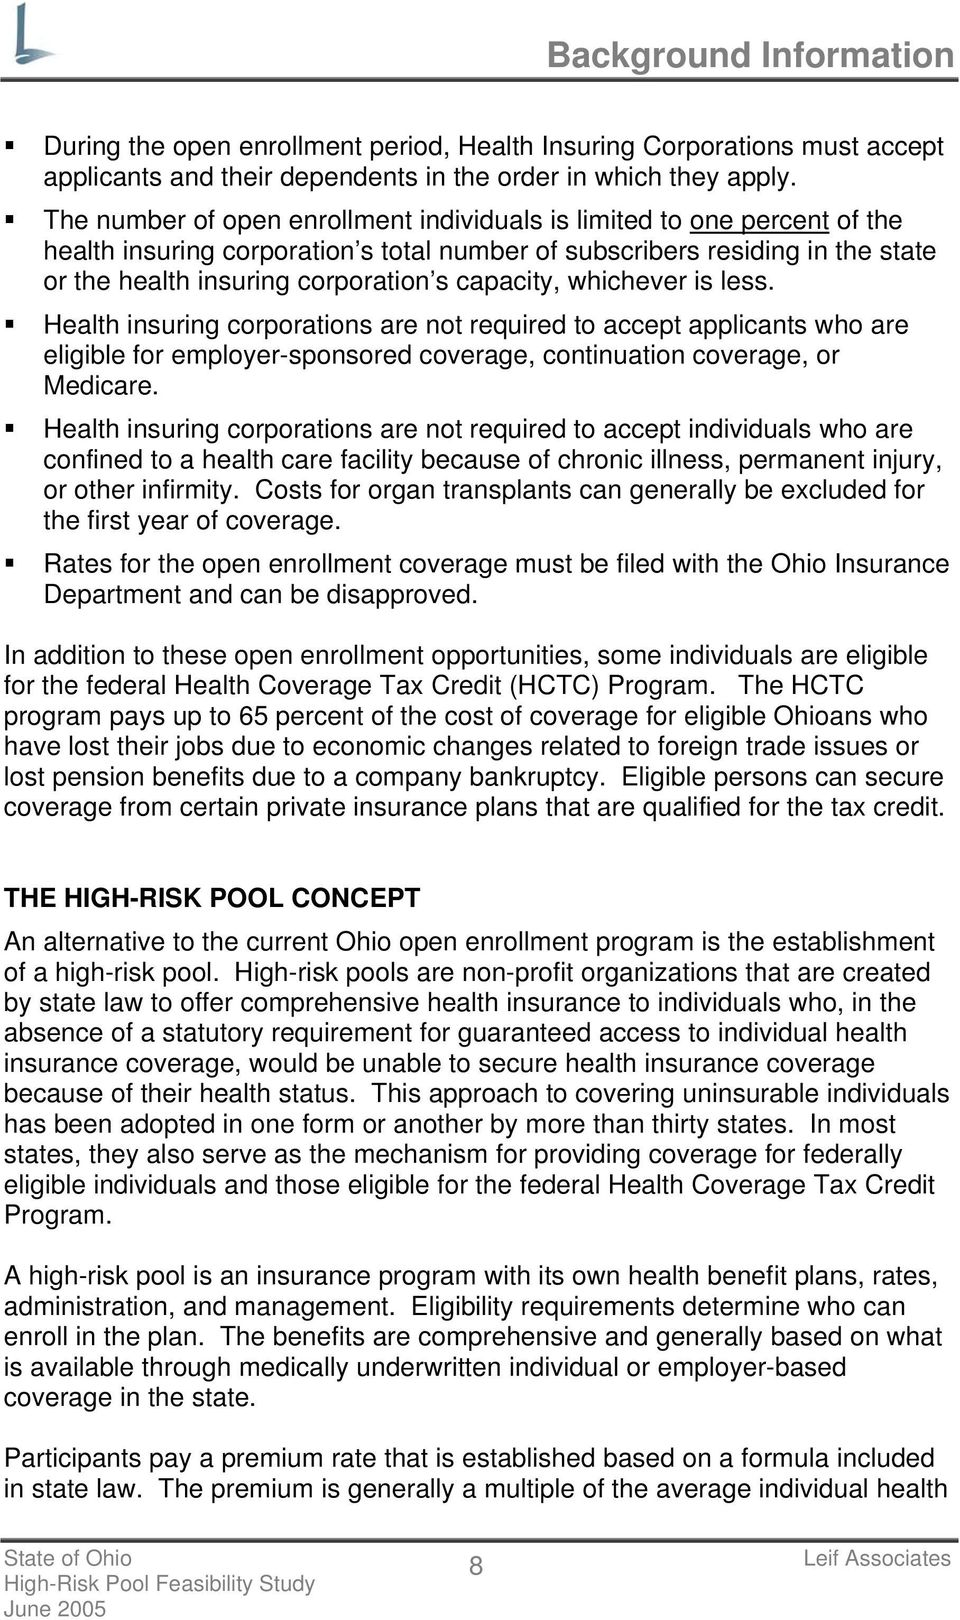 capacity, whichever is less. Health insuring corporations are not required to accept applicants who are eligible for employer-sponsored coverage, continuation coverage, or Medicare.